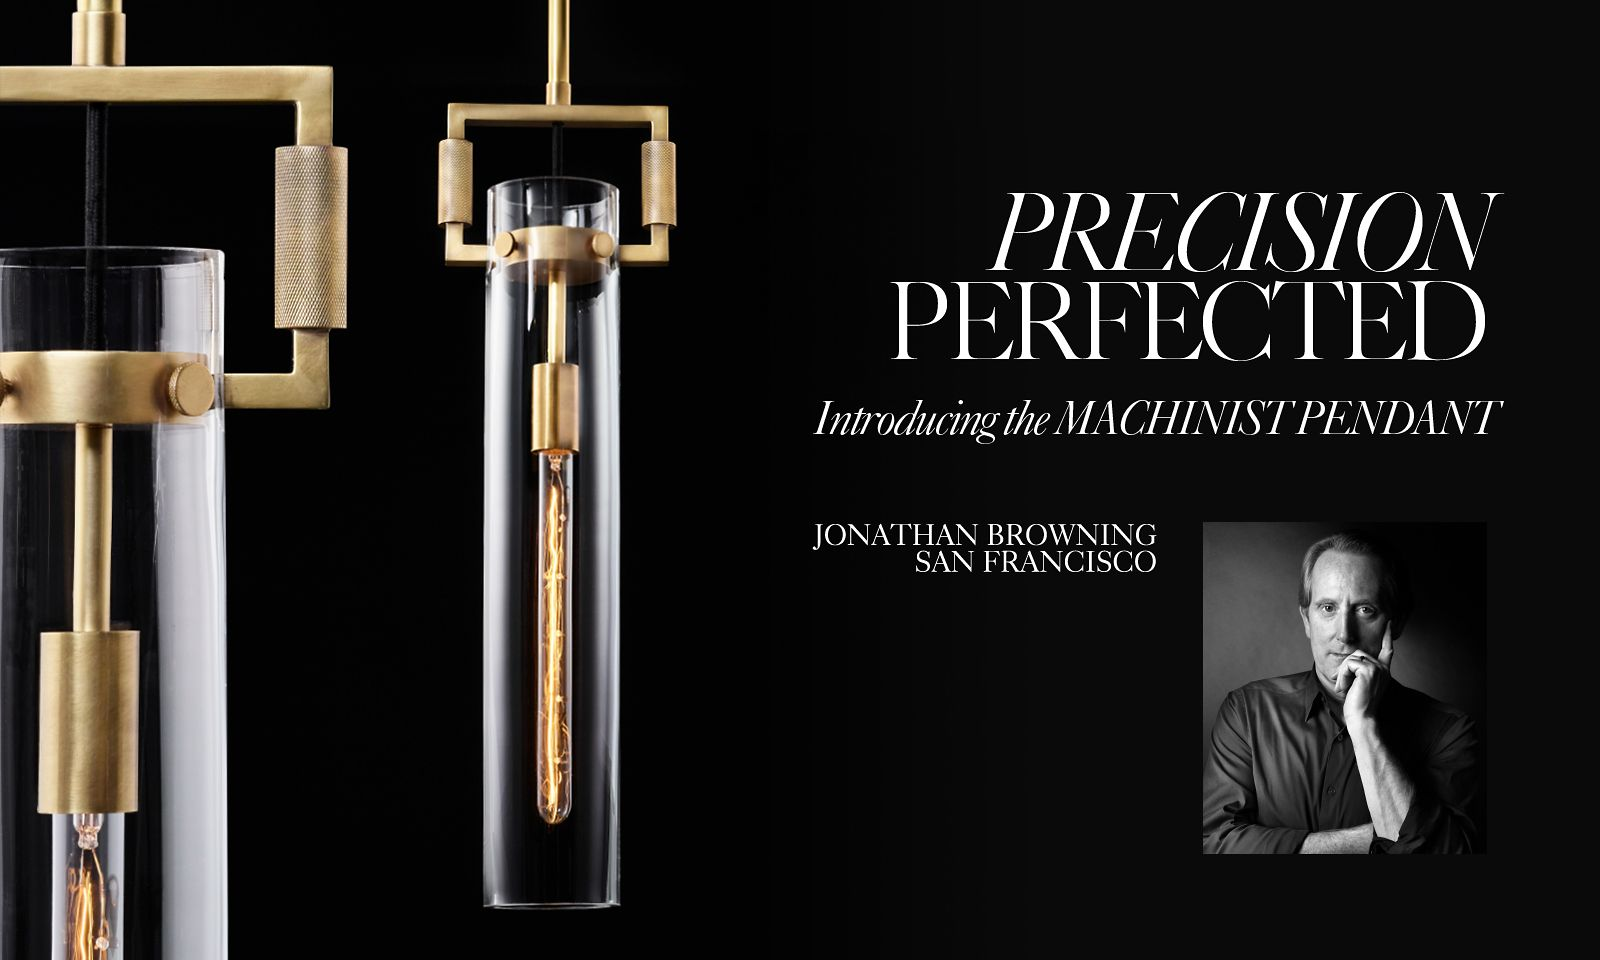 Precision Perfected. Introducing the Machinist Pendant.